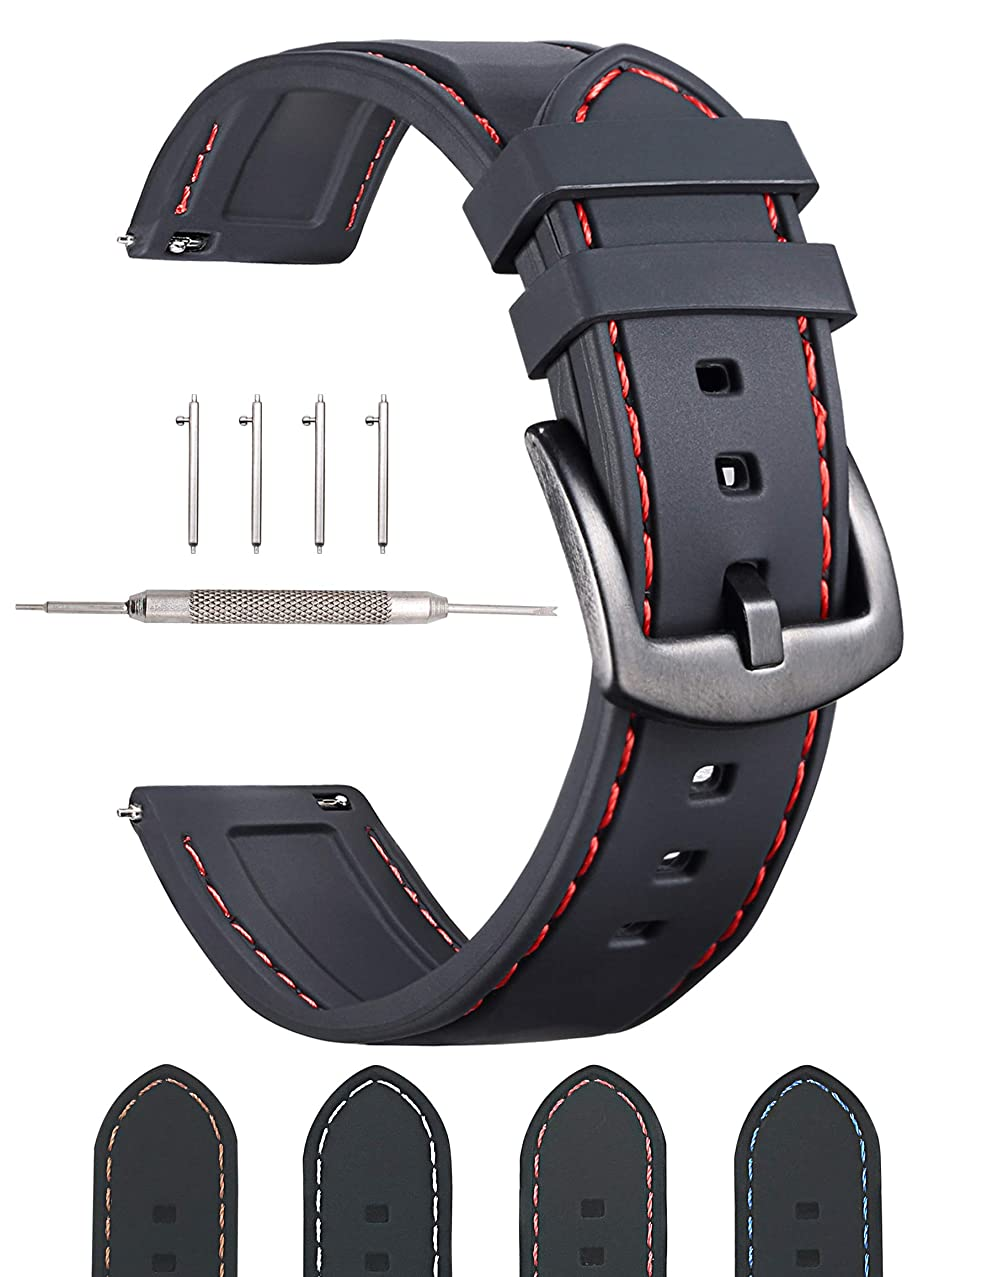 22mm Silicone Watch Bands - Quick Release Strap - Black Clasp - Waterproof - Choose Color - Width 22mm - Red Stitching - Soft Rubber Straps (Black - Red Stitching, 22MM)